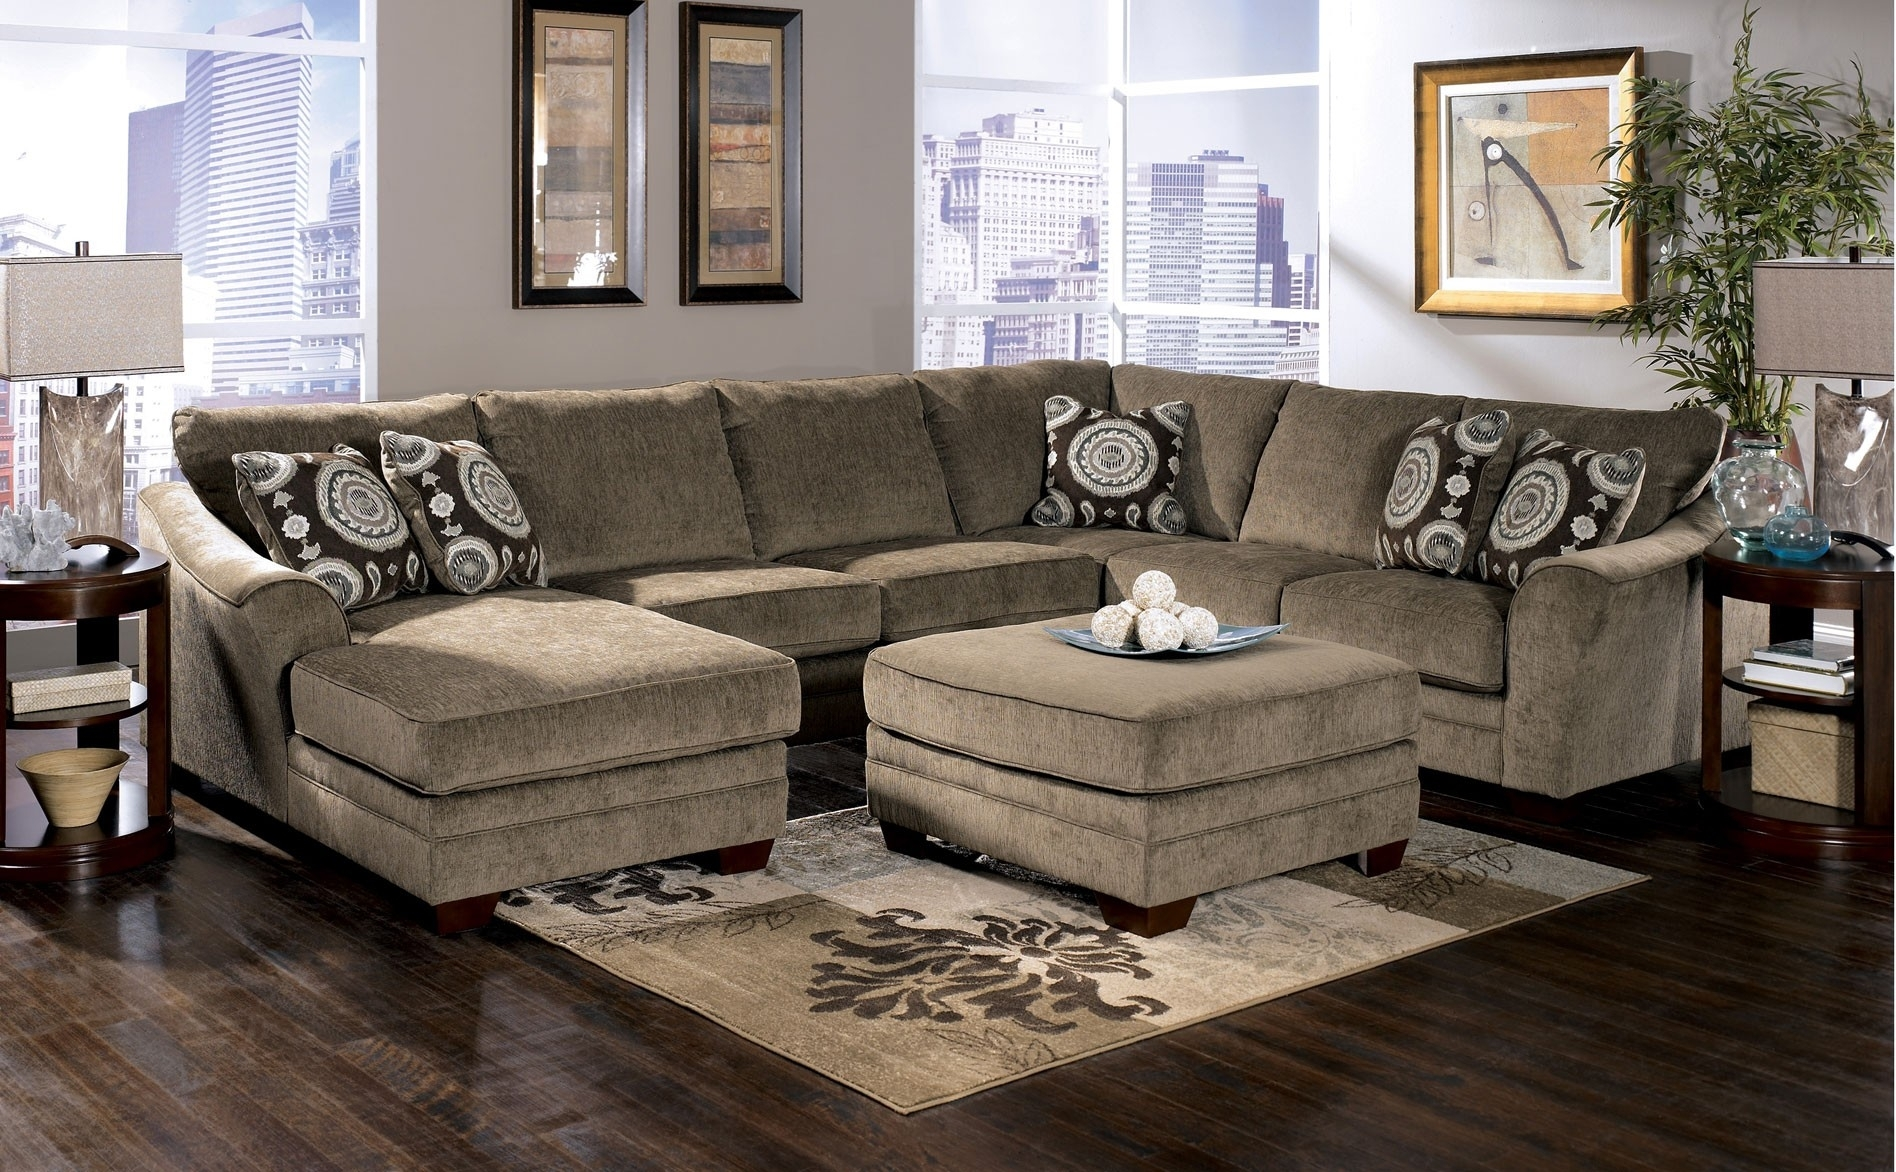 Sectional Sofa : Living~1 Sectional With Oversized Ottoman With Regard To Sectionals With Oversized Ottoman (View 9 of 15)